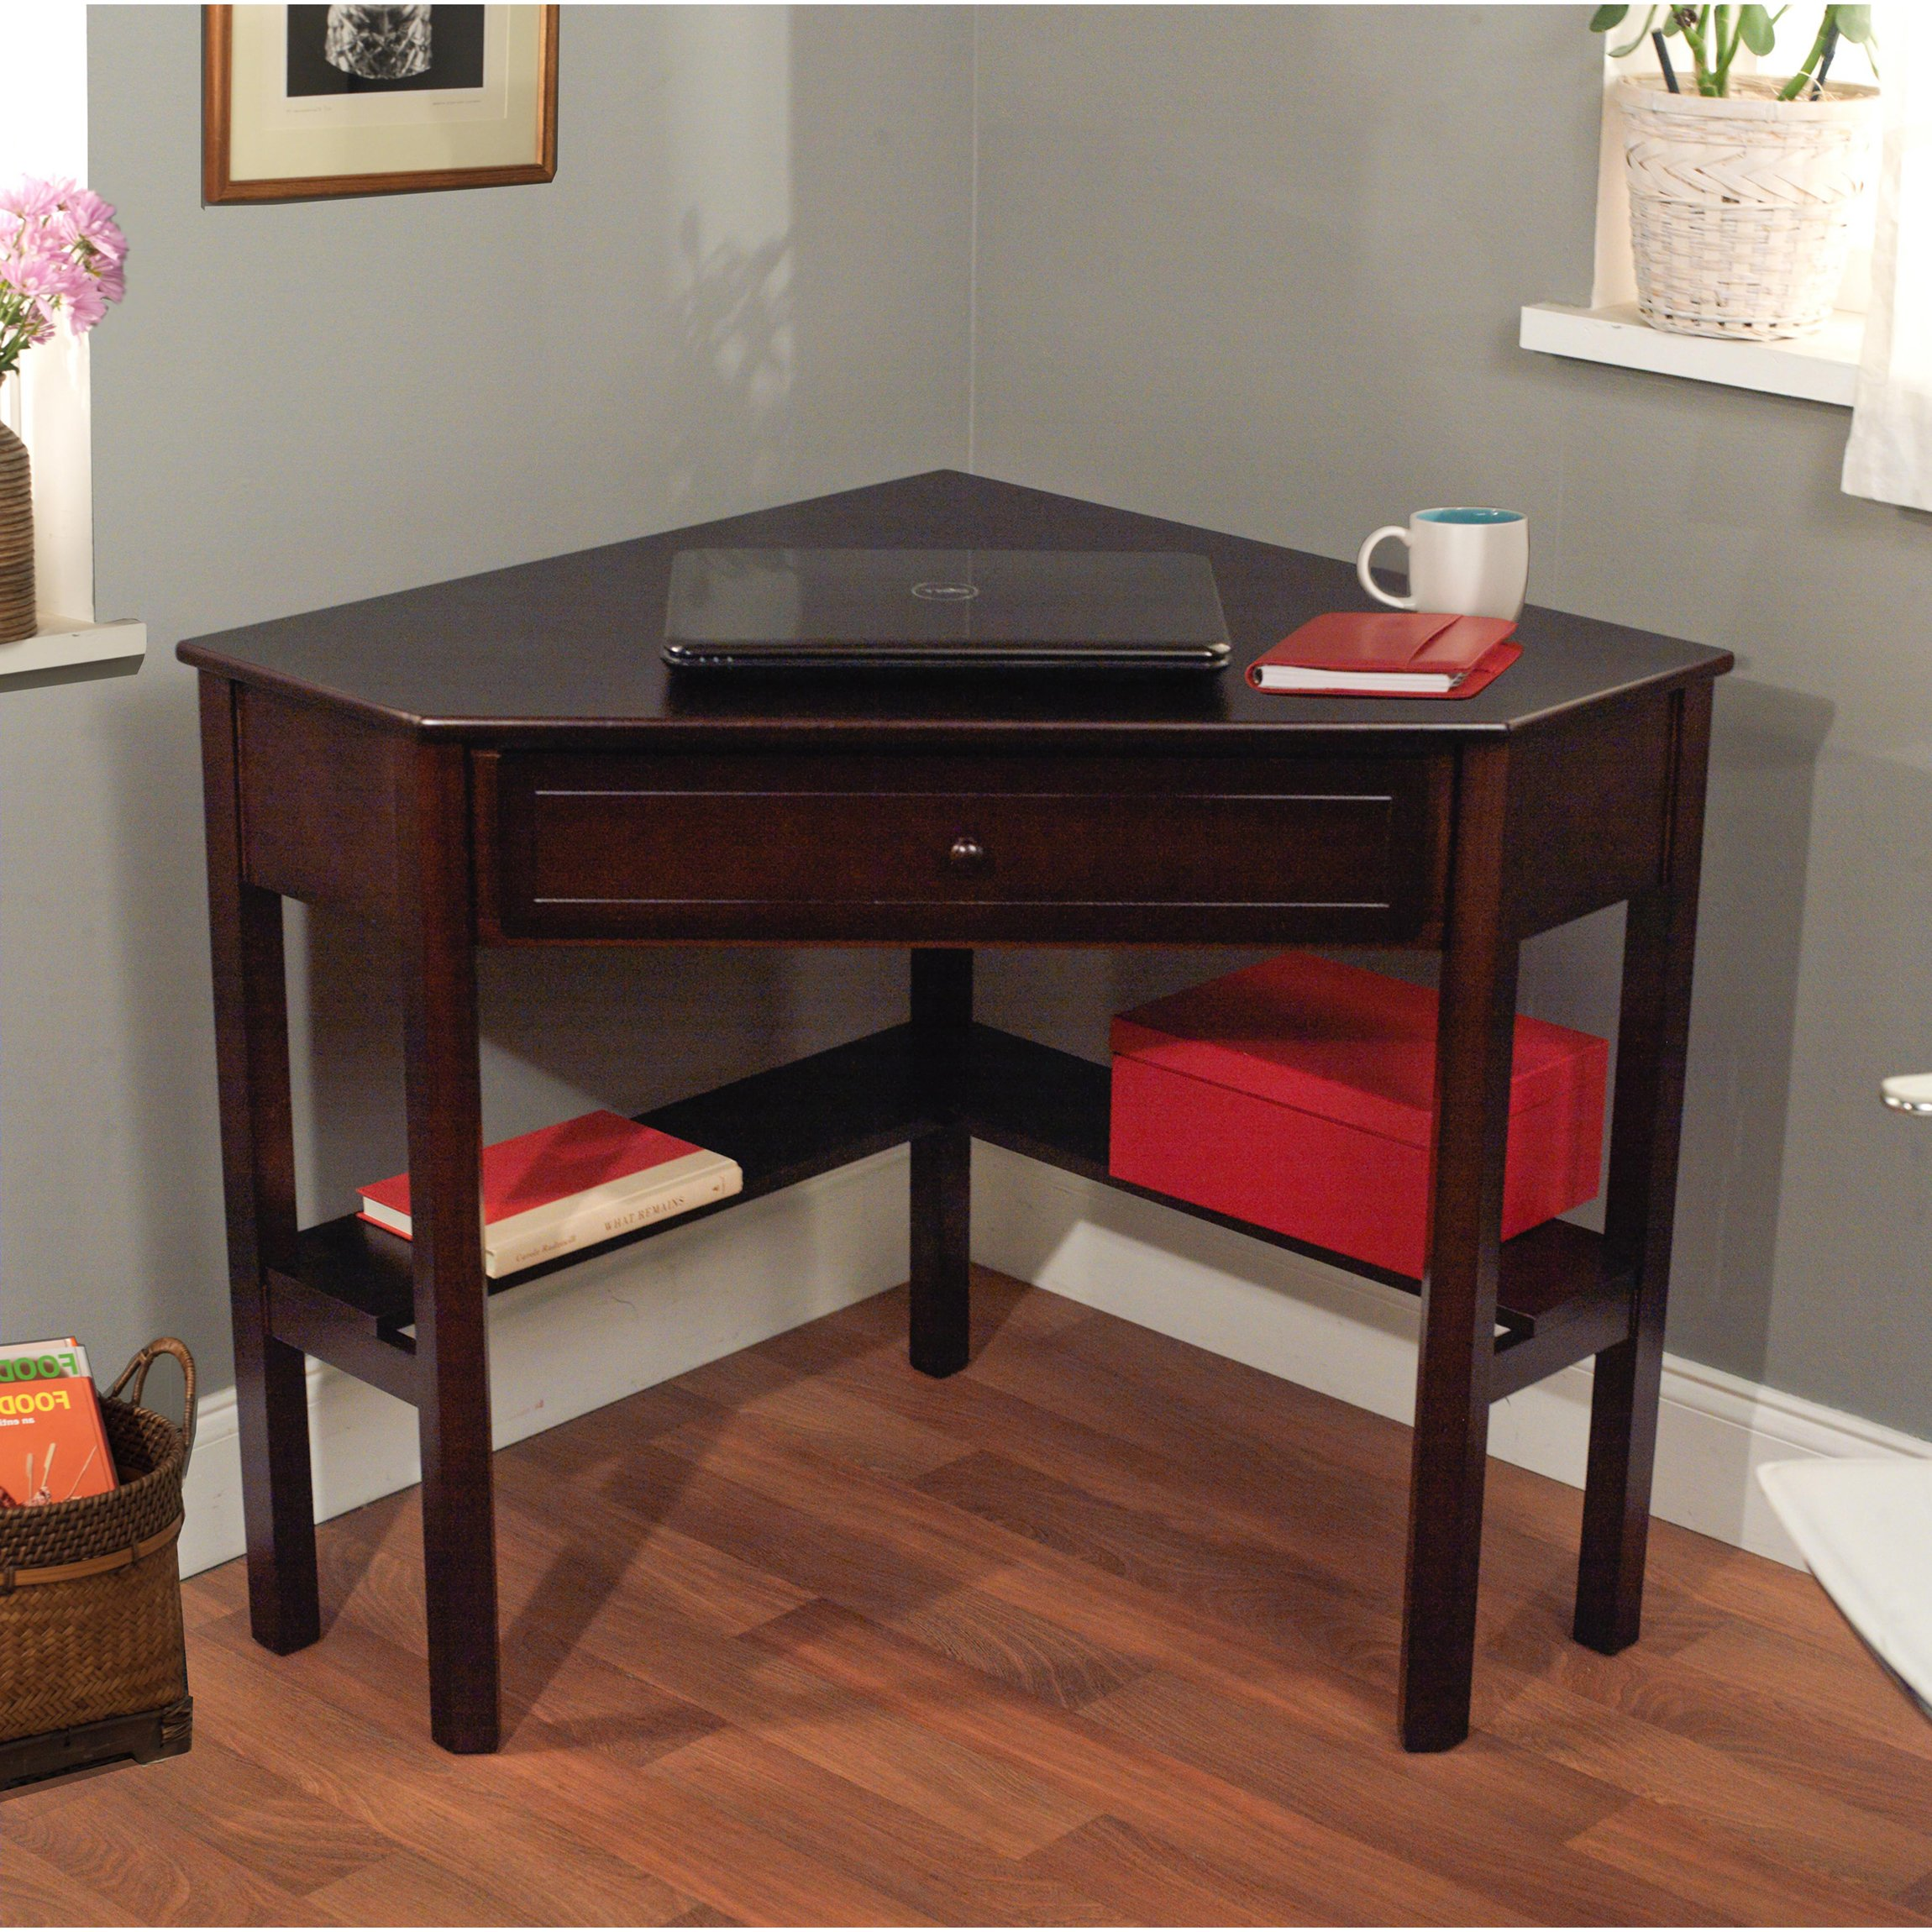 Beautiful Andover Millsu0026reg; Ansara Corner Writing Desk corner writing desk